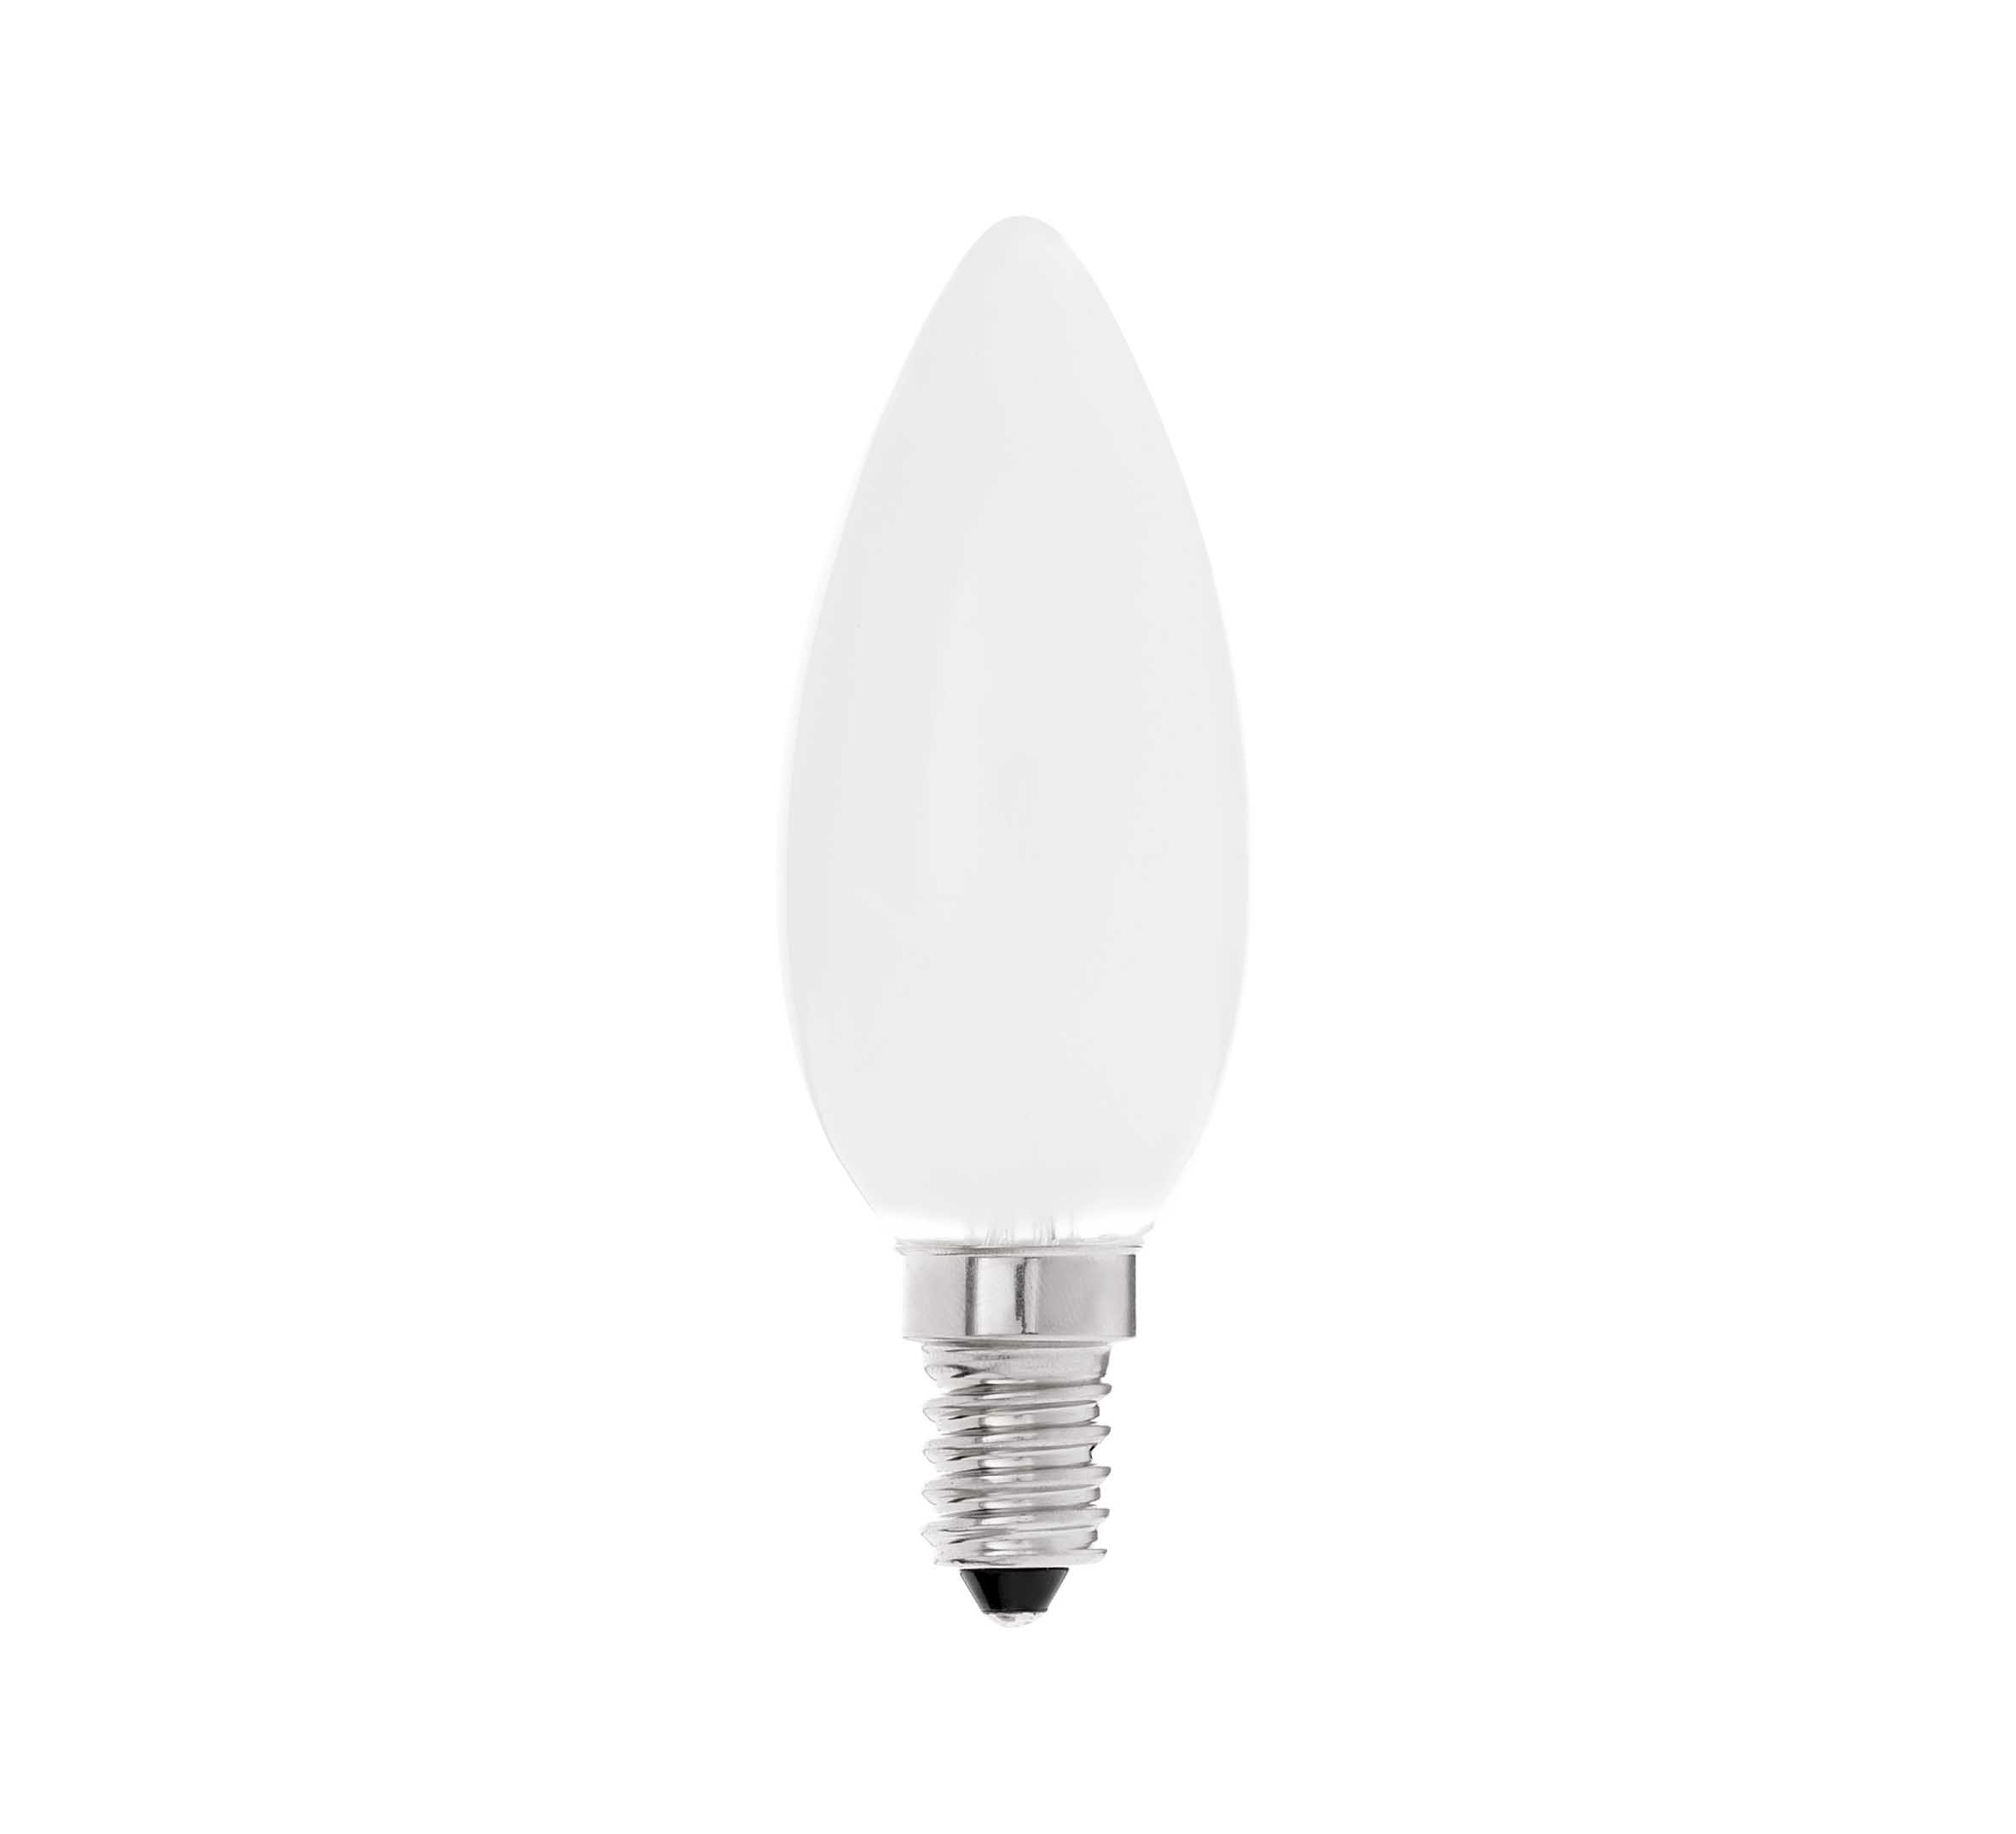 Led E 14 Eco Bulb Led E14 Candle 2700k 450lm 4w Matt Glass H10cm Ø3 5cm Faro